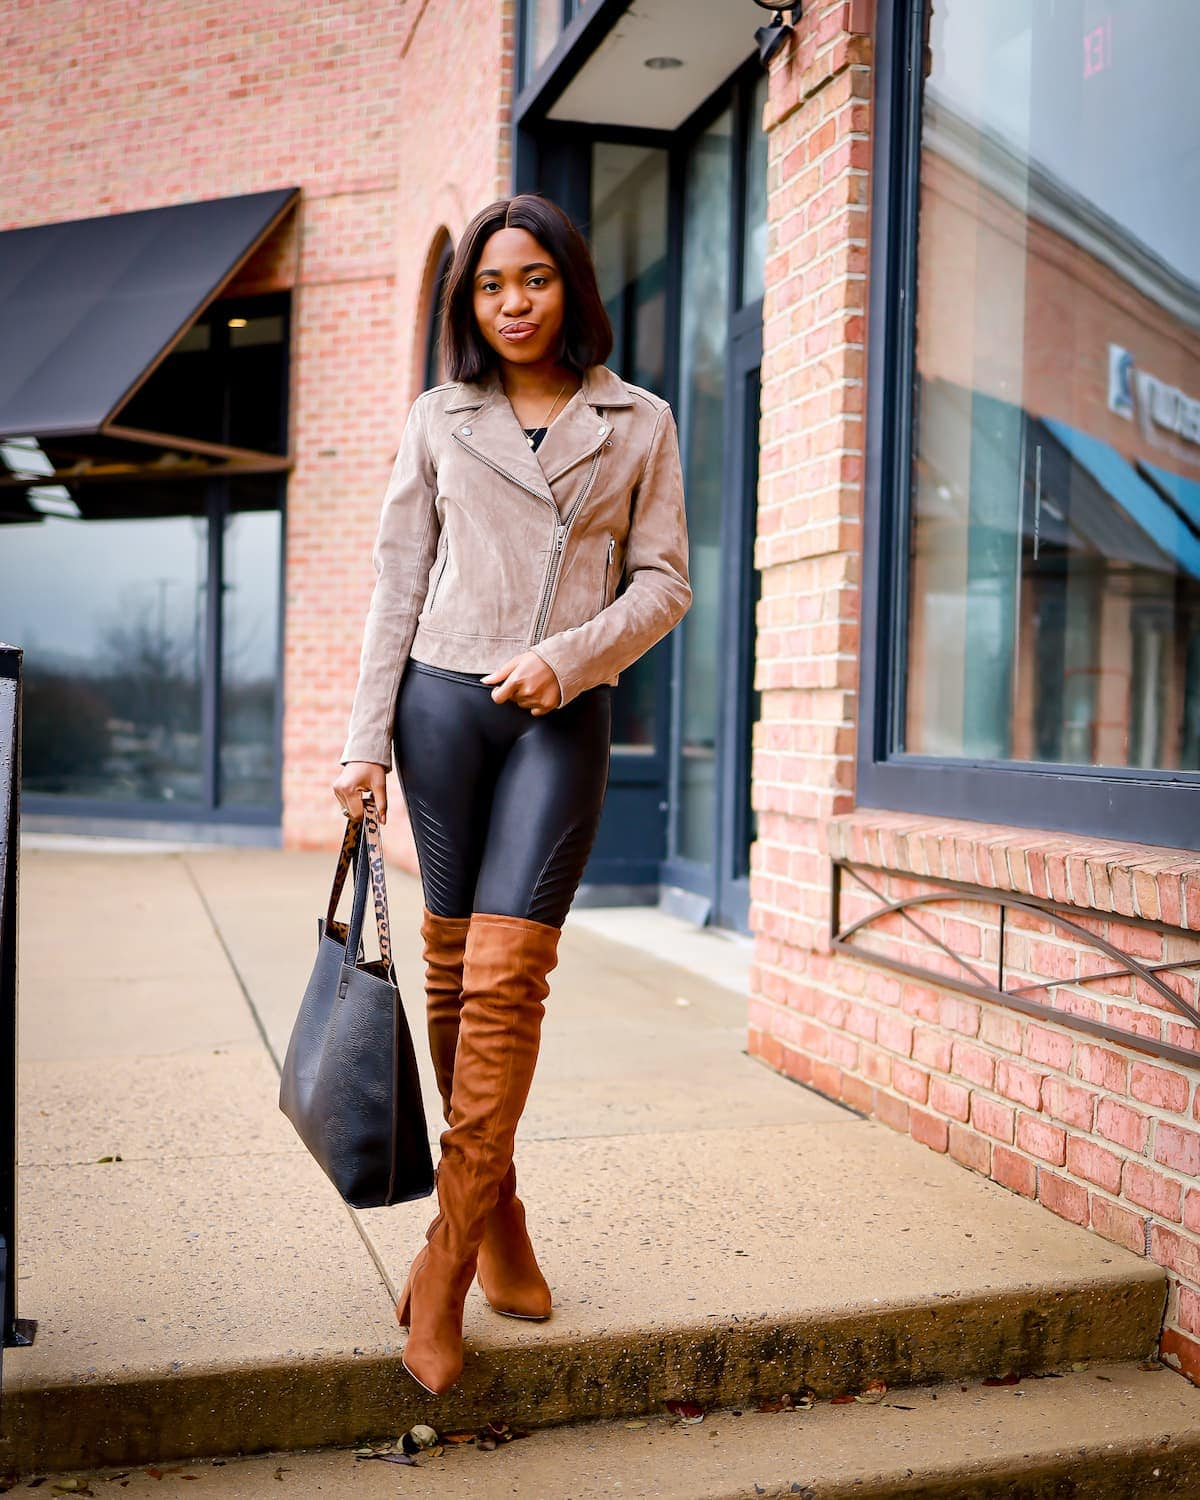 Spanx moto leggings review | Is this Spanx faux leather leggings worth it? Sharing my thoughts on the quality of these Moto leggings after 12+ months of wearing in constant rotation. Keep reading to get the scoop on if these leggings are worth the money or simply a waste of money. #spanx #nordstrom #blanknyc